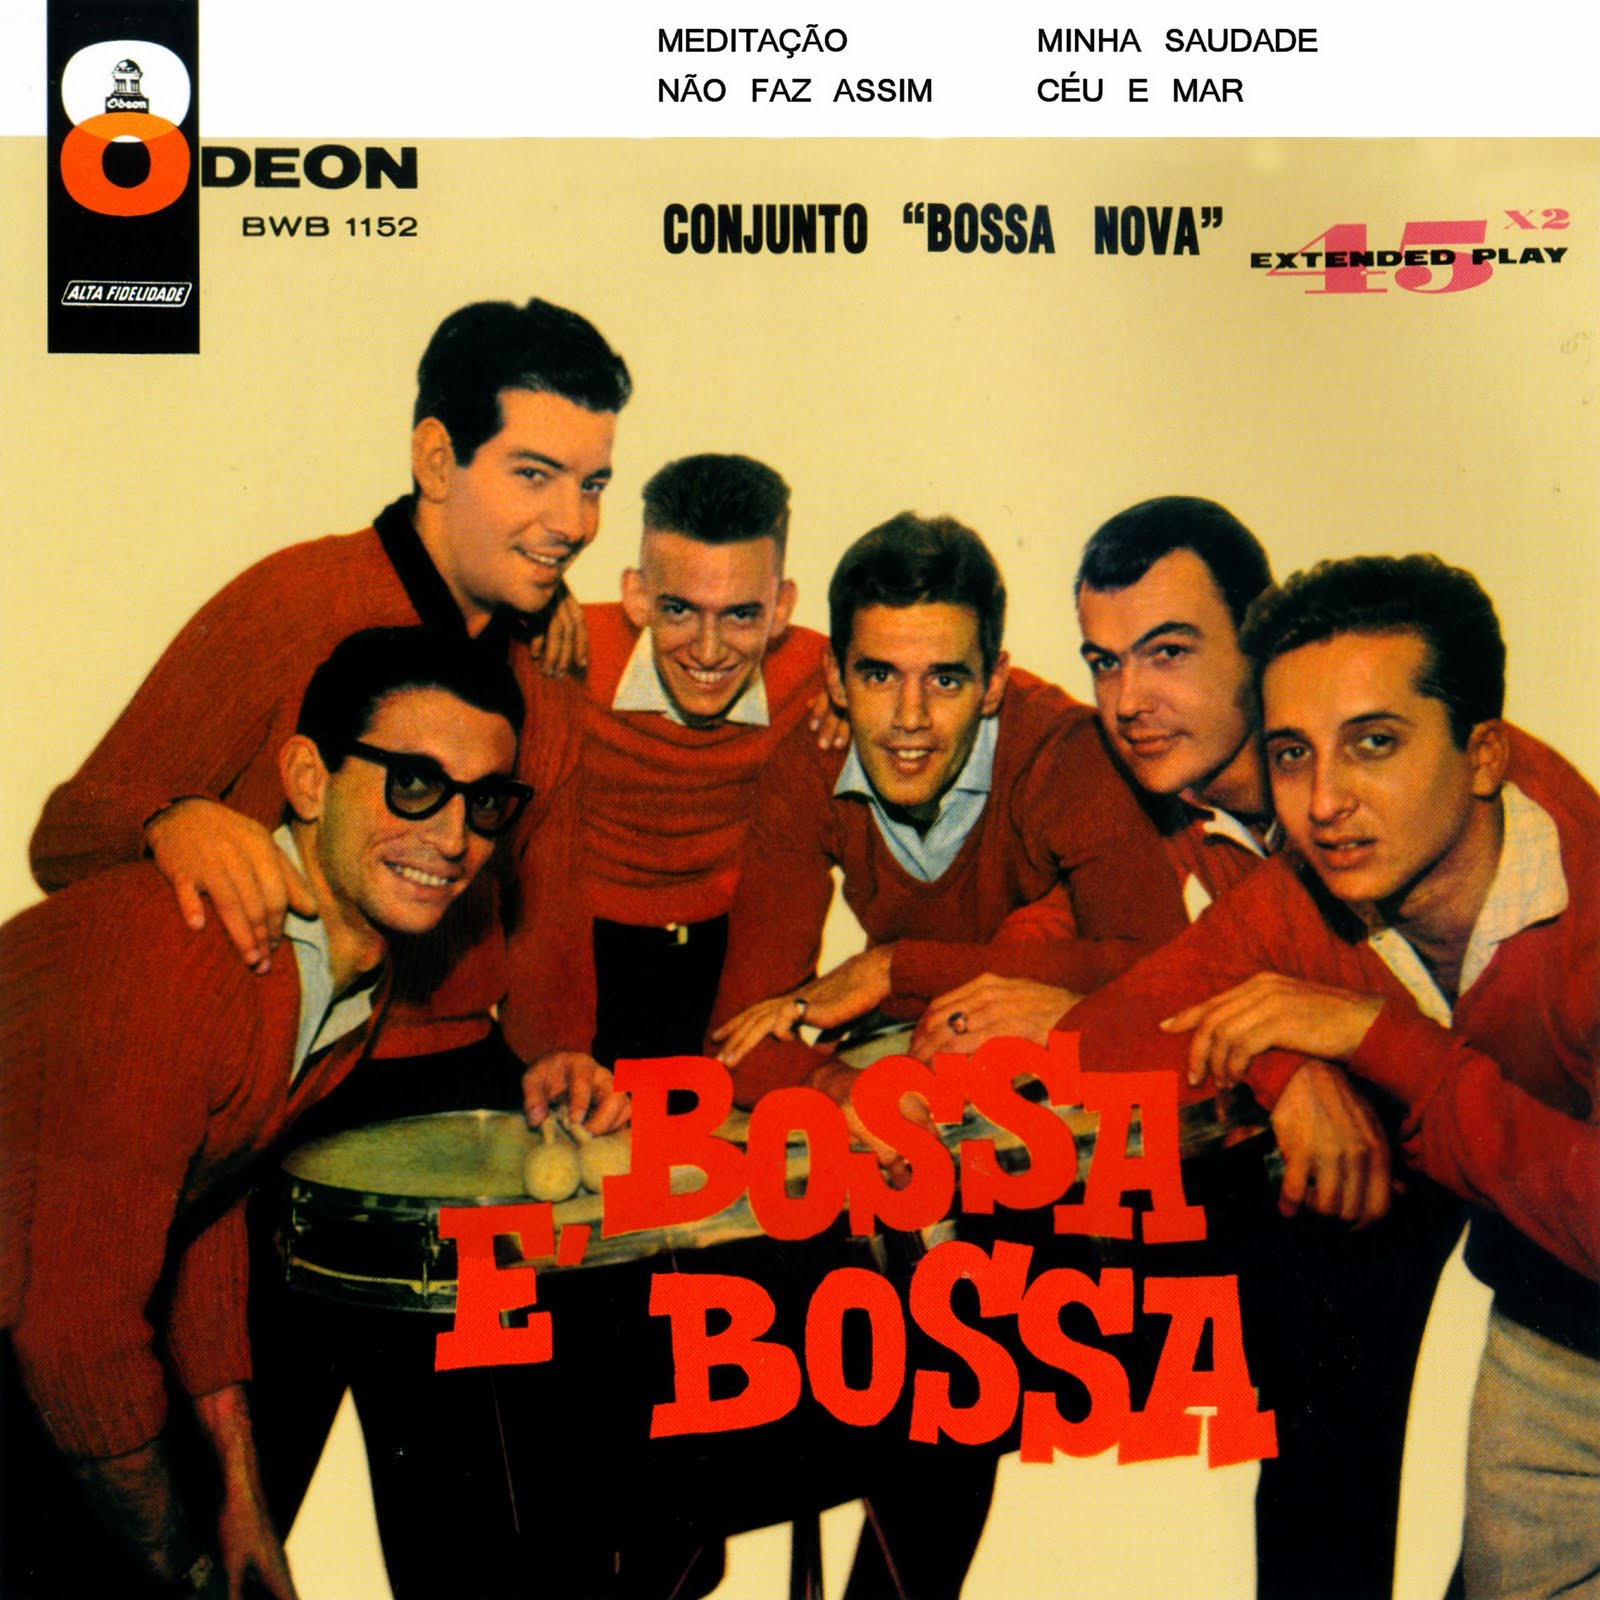 Nova group (Conjunto Bossa